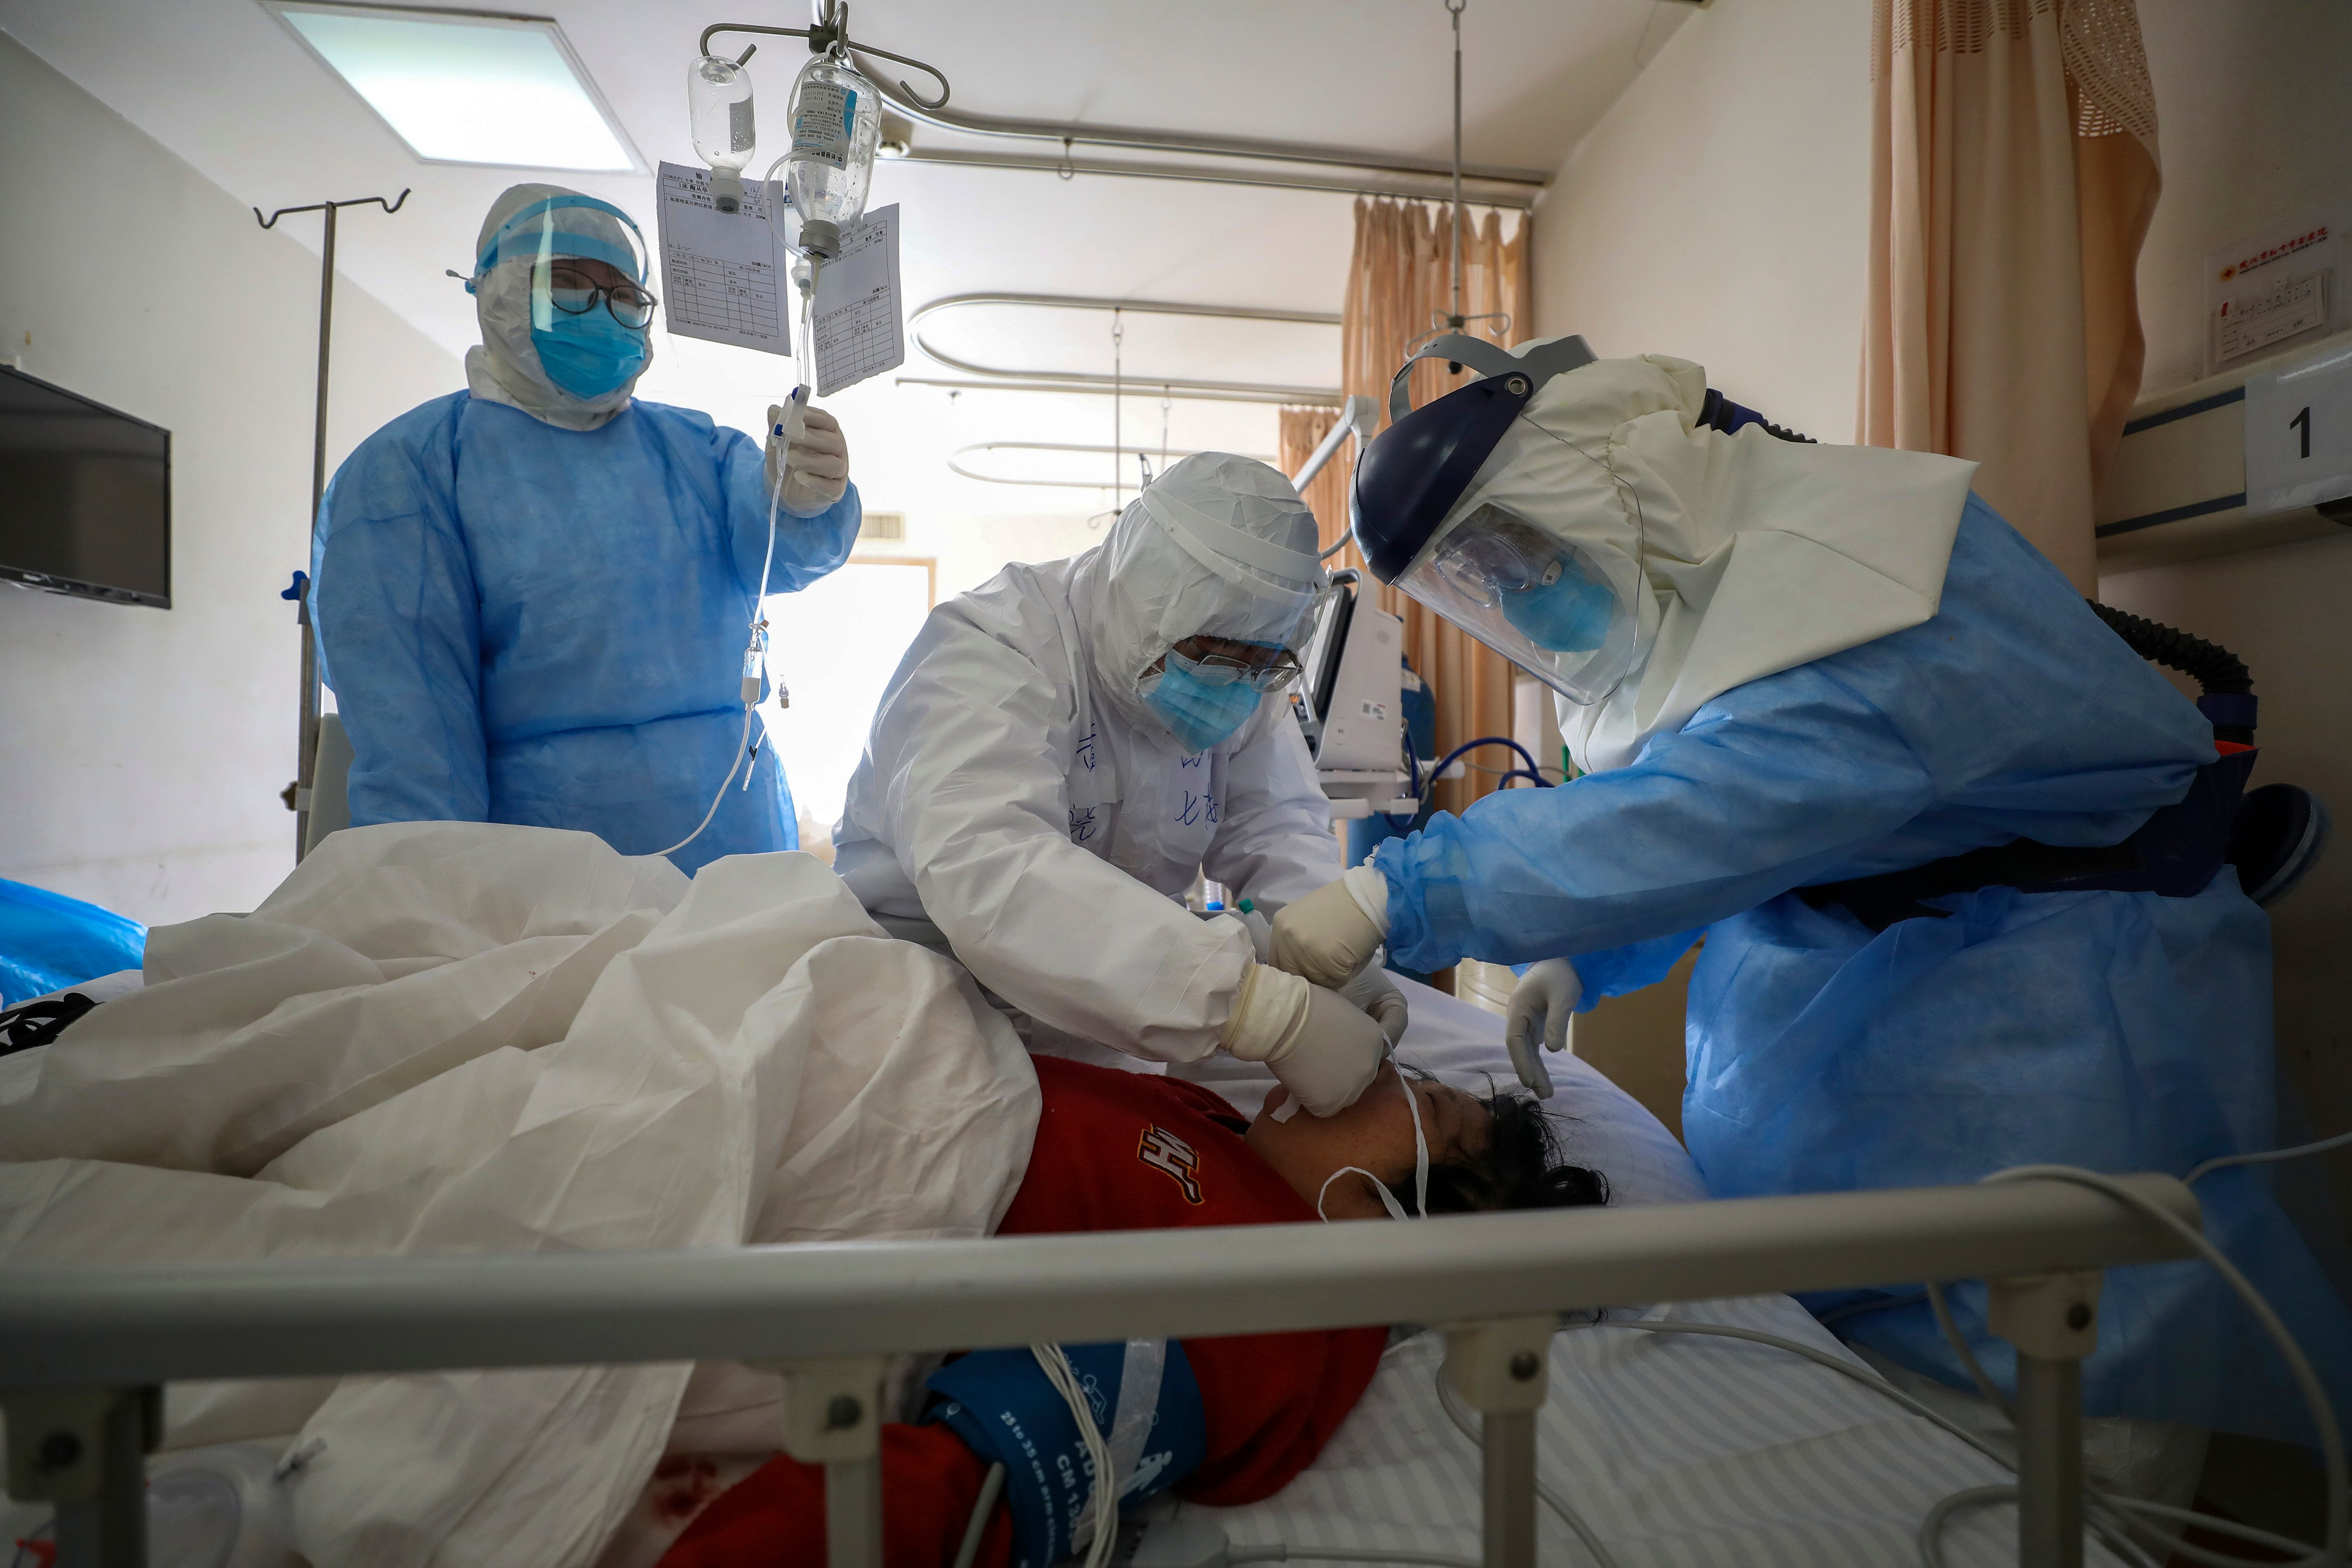 A coronavirus patient is getting treatment at a hospital in Wuhan in central China's Hubei province.